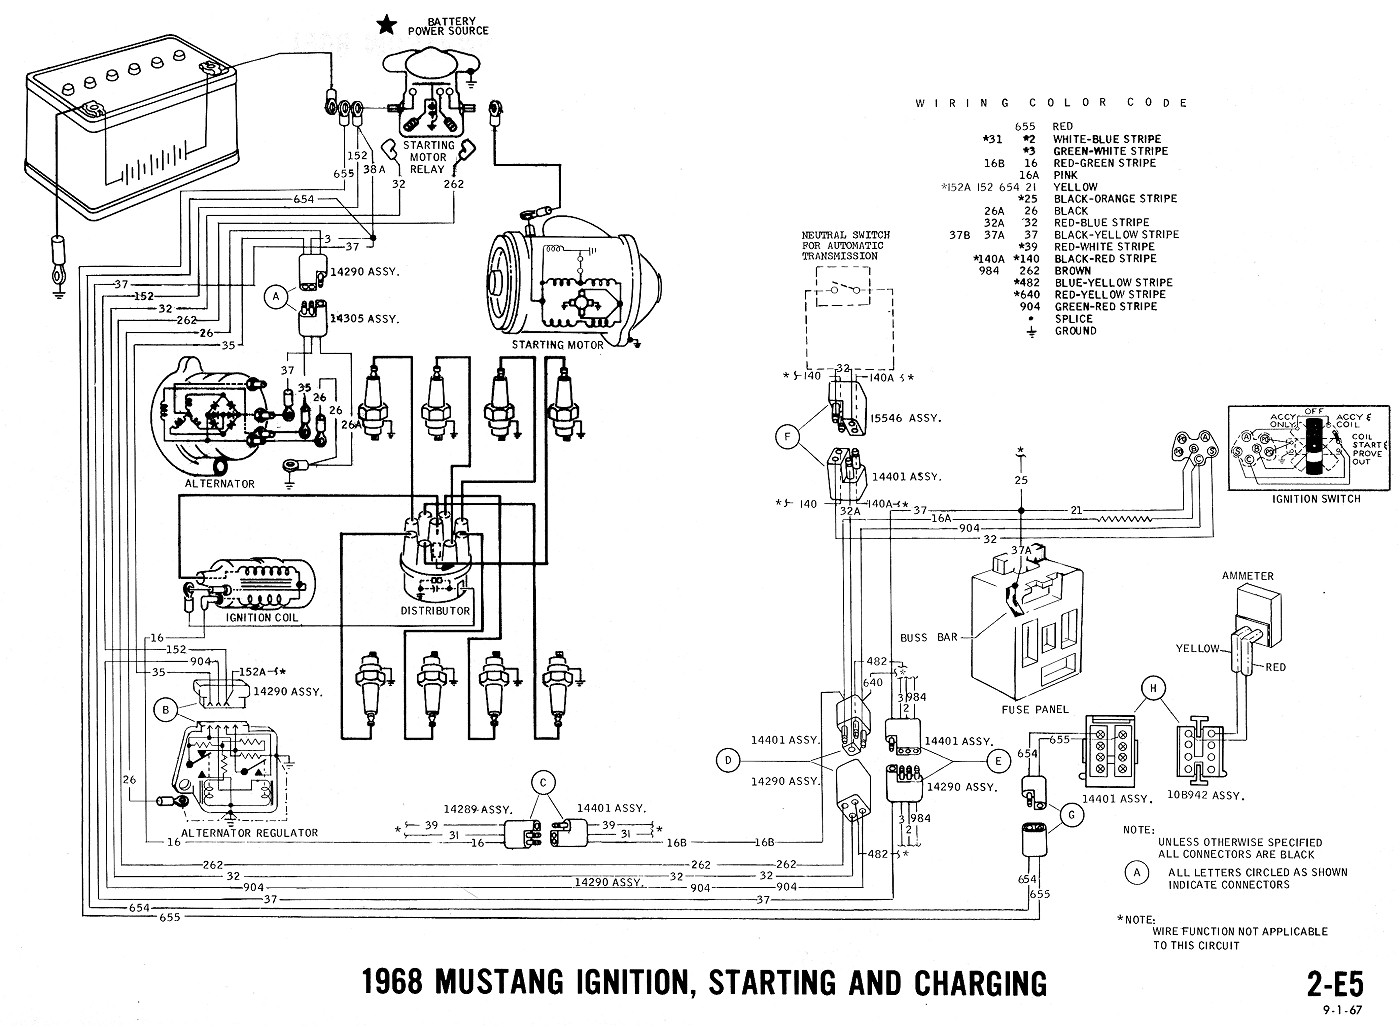 1968 mustang wiring harness diagram - wiring diagrams long plunge-menu -  plunge-menu.ipiccolidi3p.it  plunge-menu.ipiccolidi3p.it